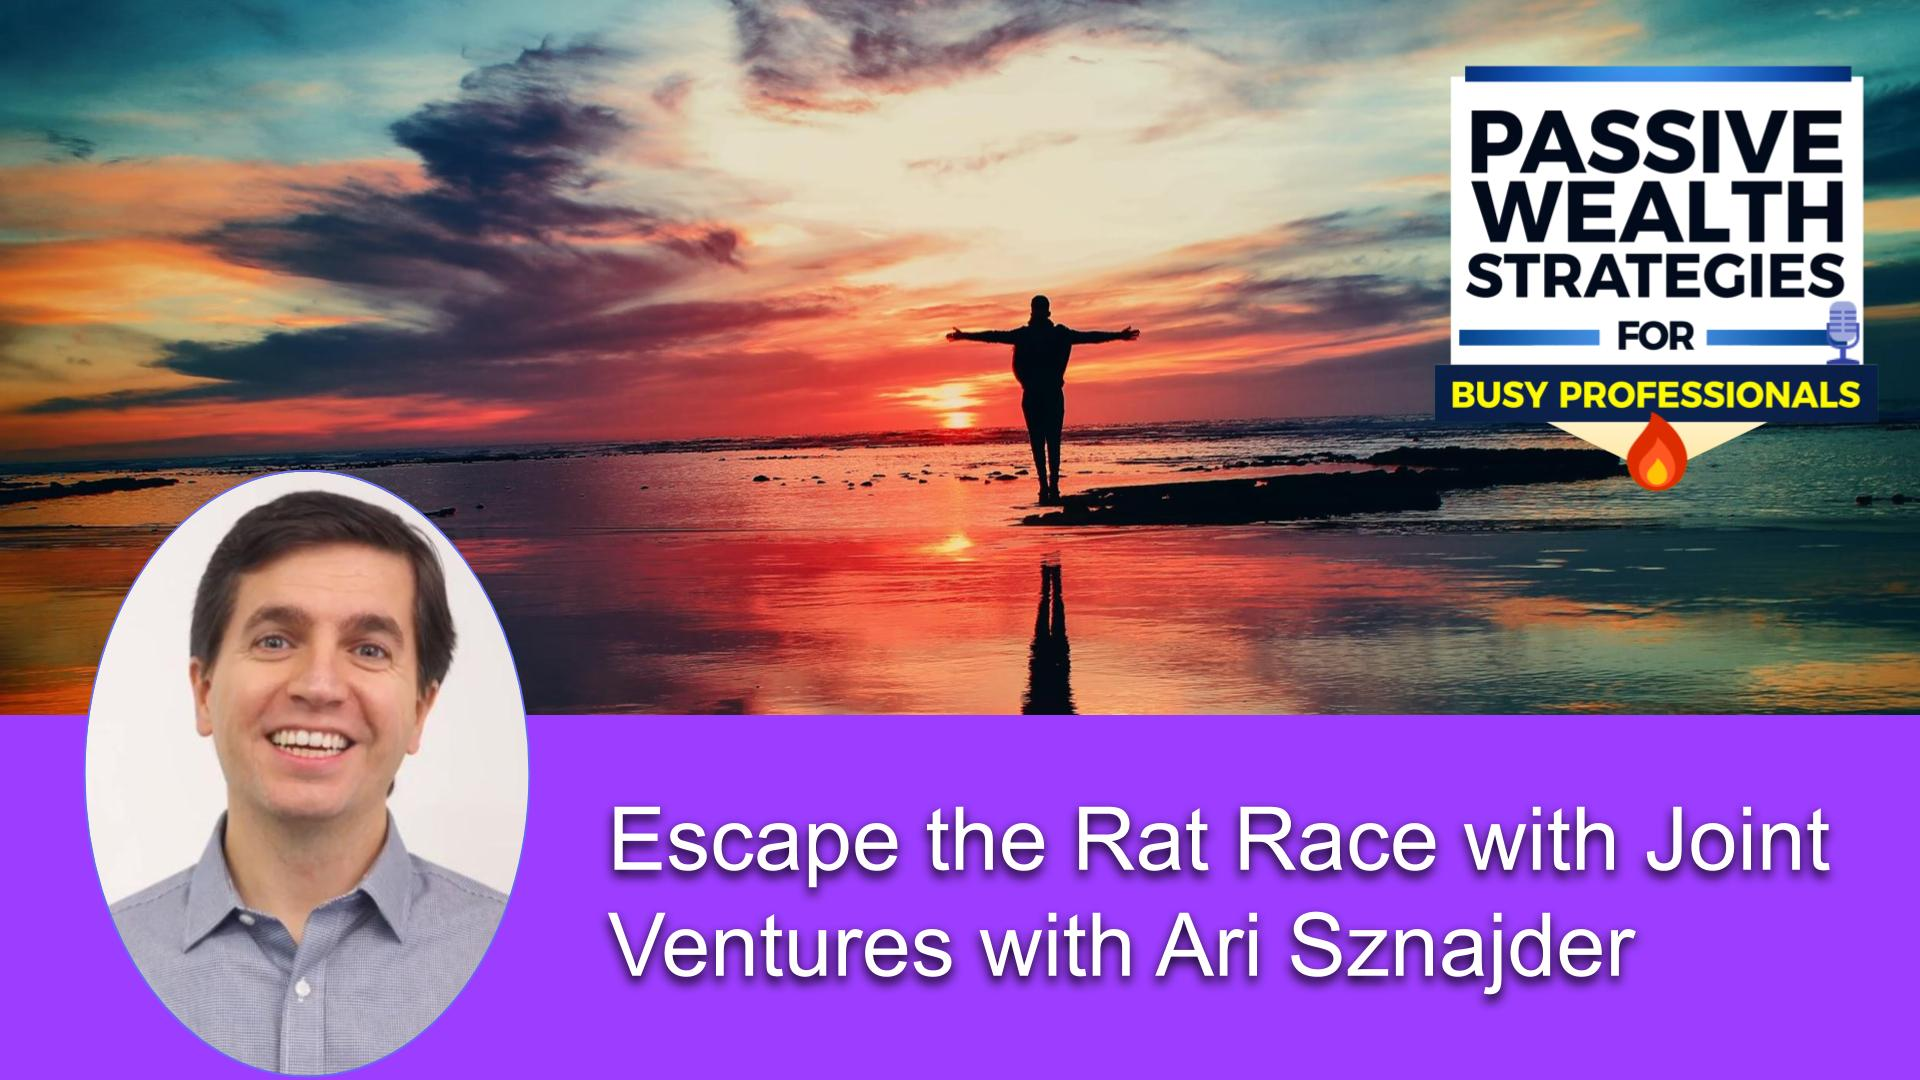 172 Escape the Rat Race with Joint Ventures with Ari Sznajder